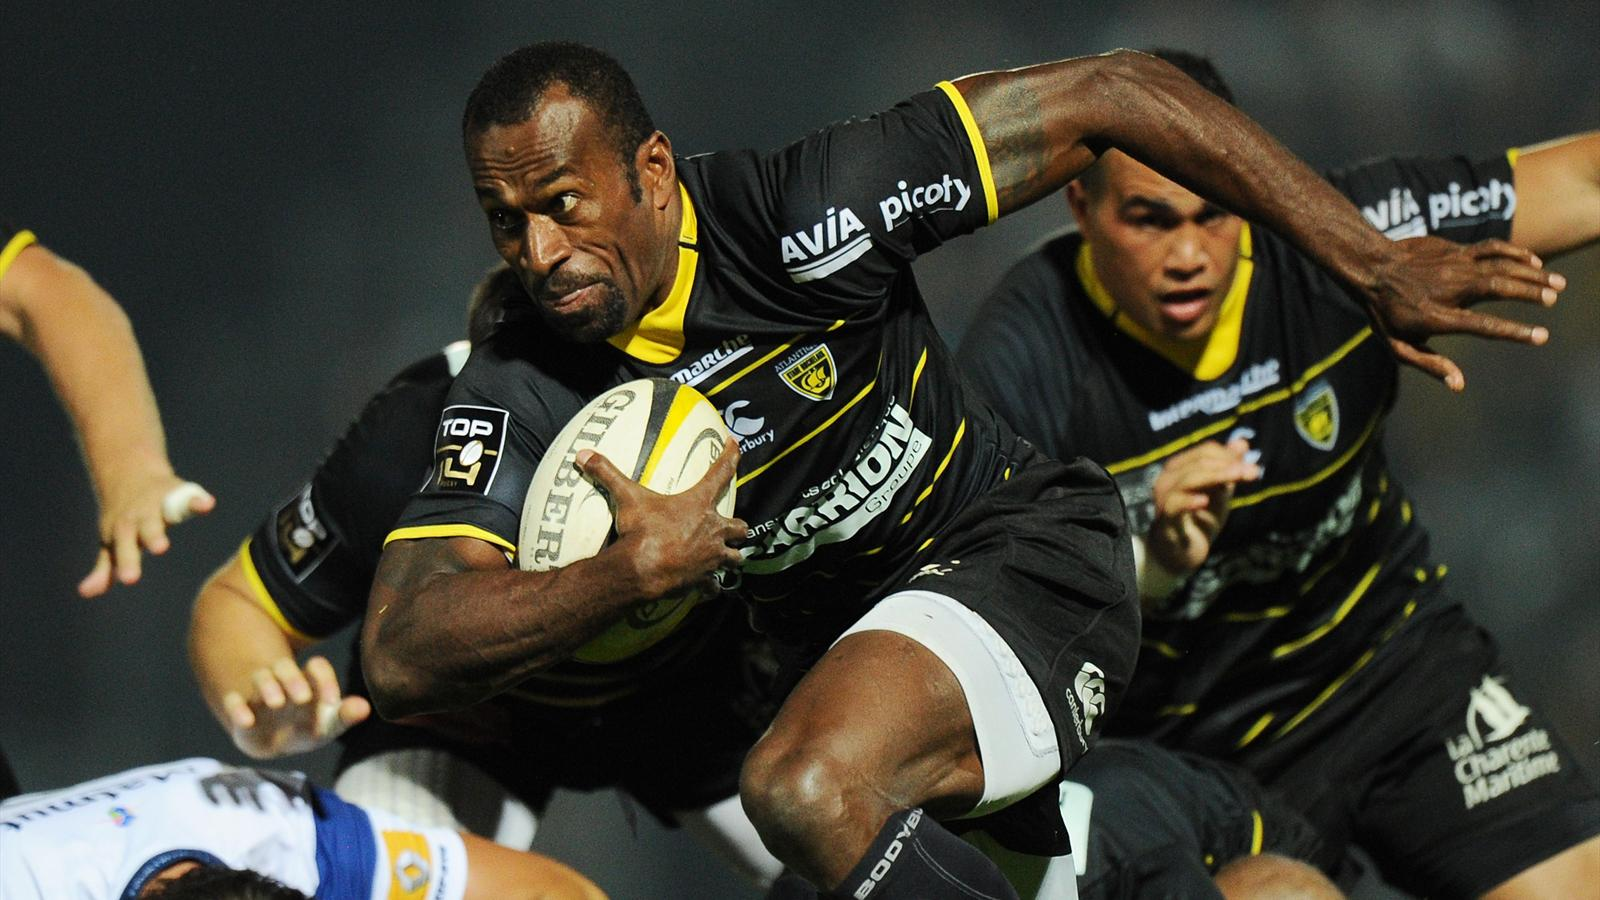 Rugby Top 14: Match La Rochelle vs Montpellier HR en direct live streaming